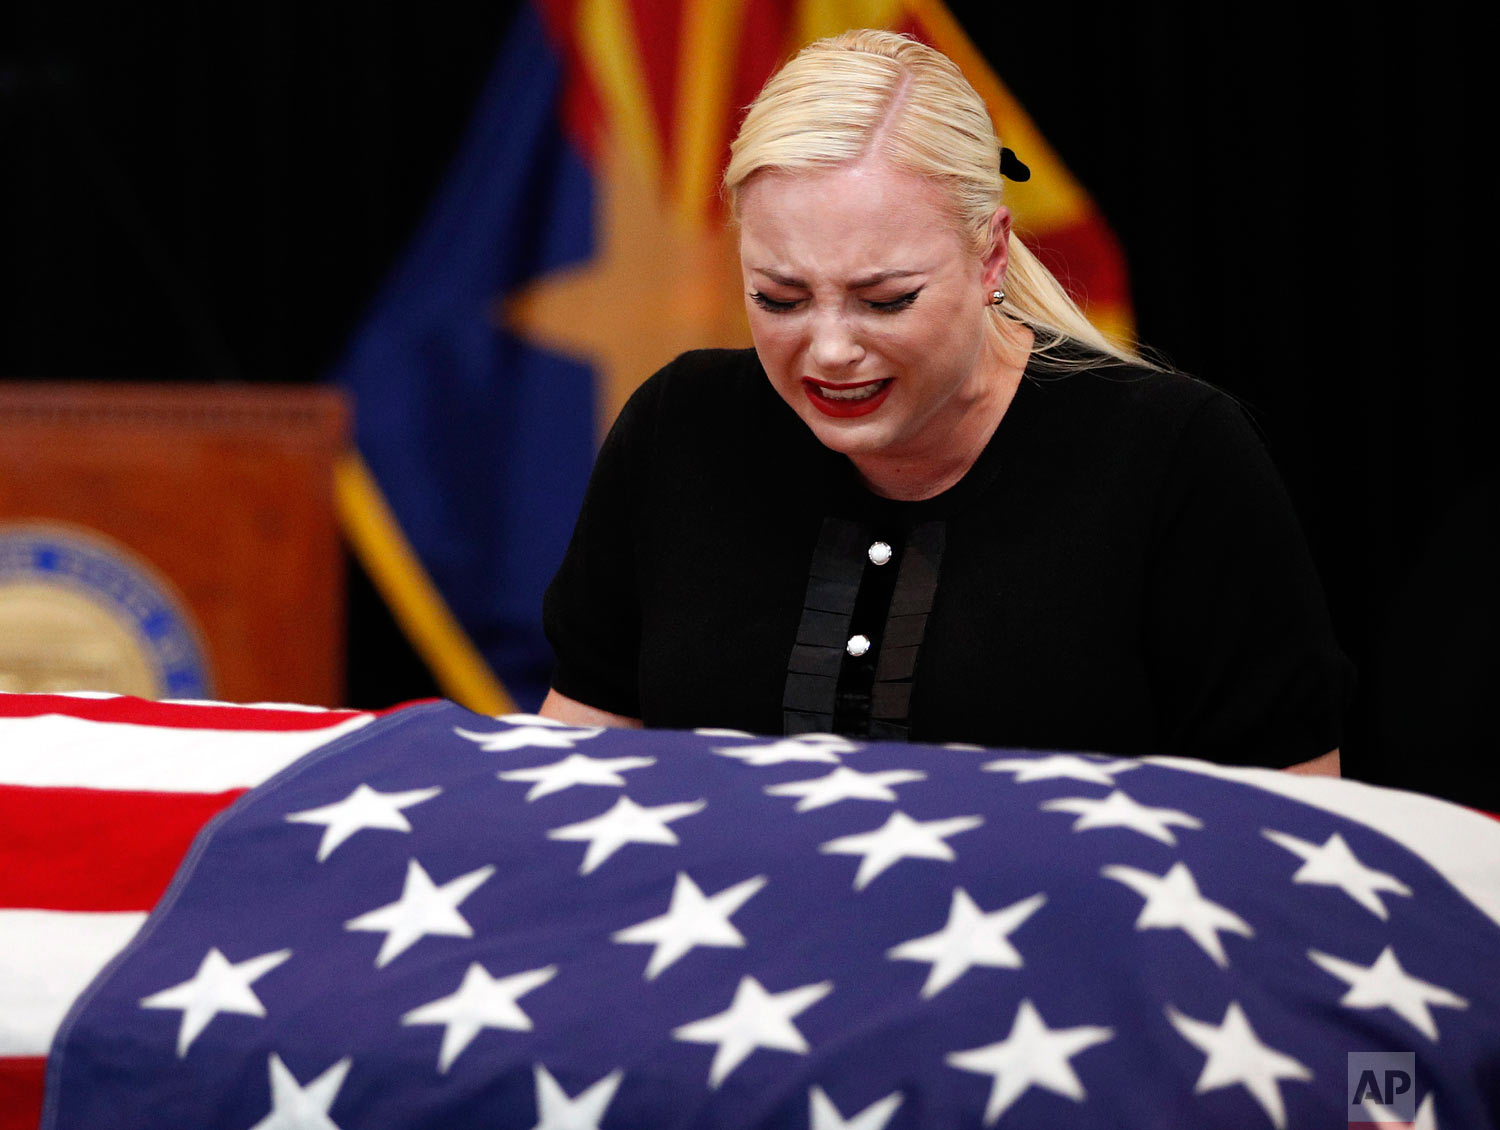 Meghan McCain, daughter of Sen. John McCain, R-Ariz., cries at the casket of her father during a memorial service at the Arizona Capitol on Wednesday, Aug. 29, 2018, in Phoenix. (AP Photo/Jae C. Hong, Pool)